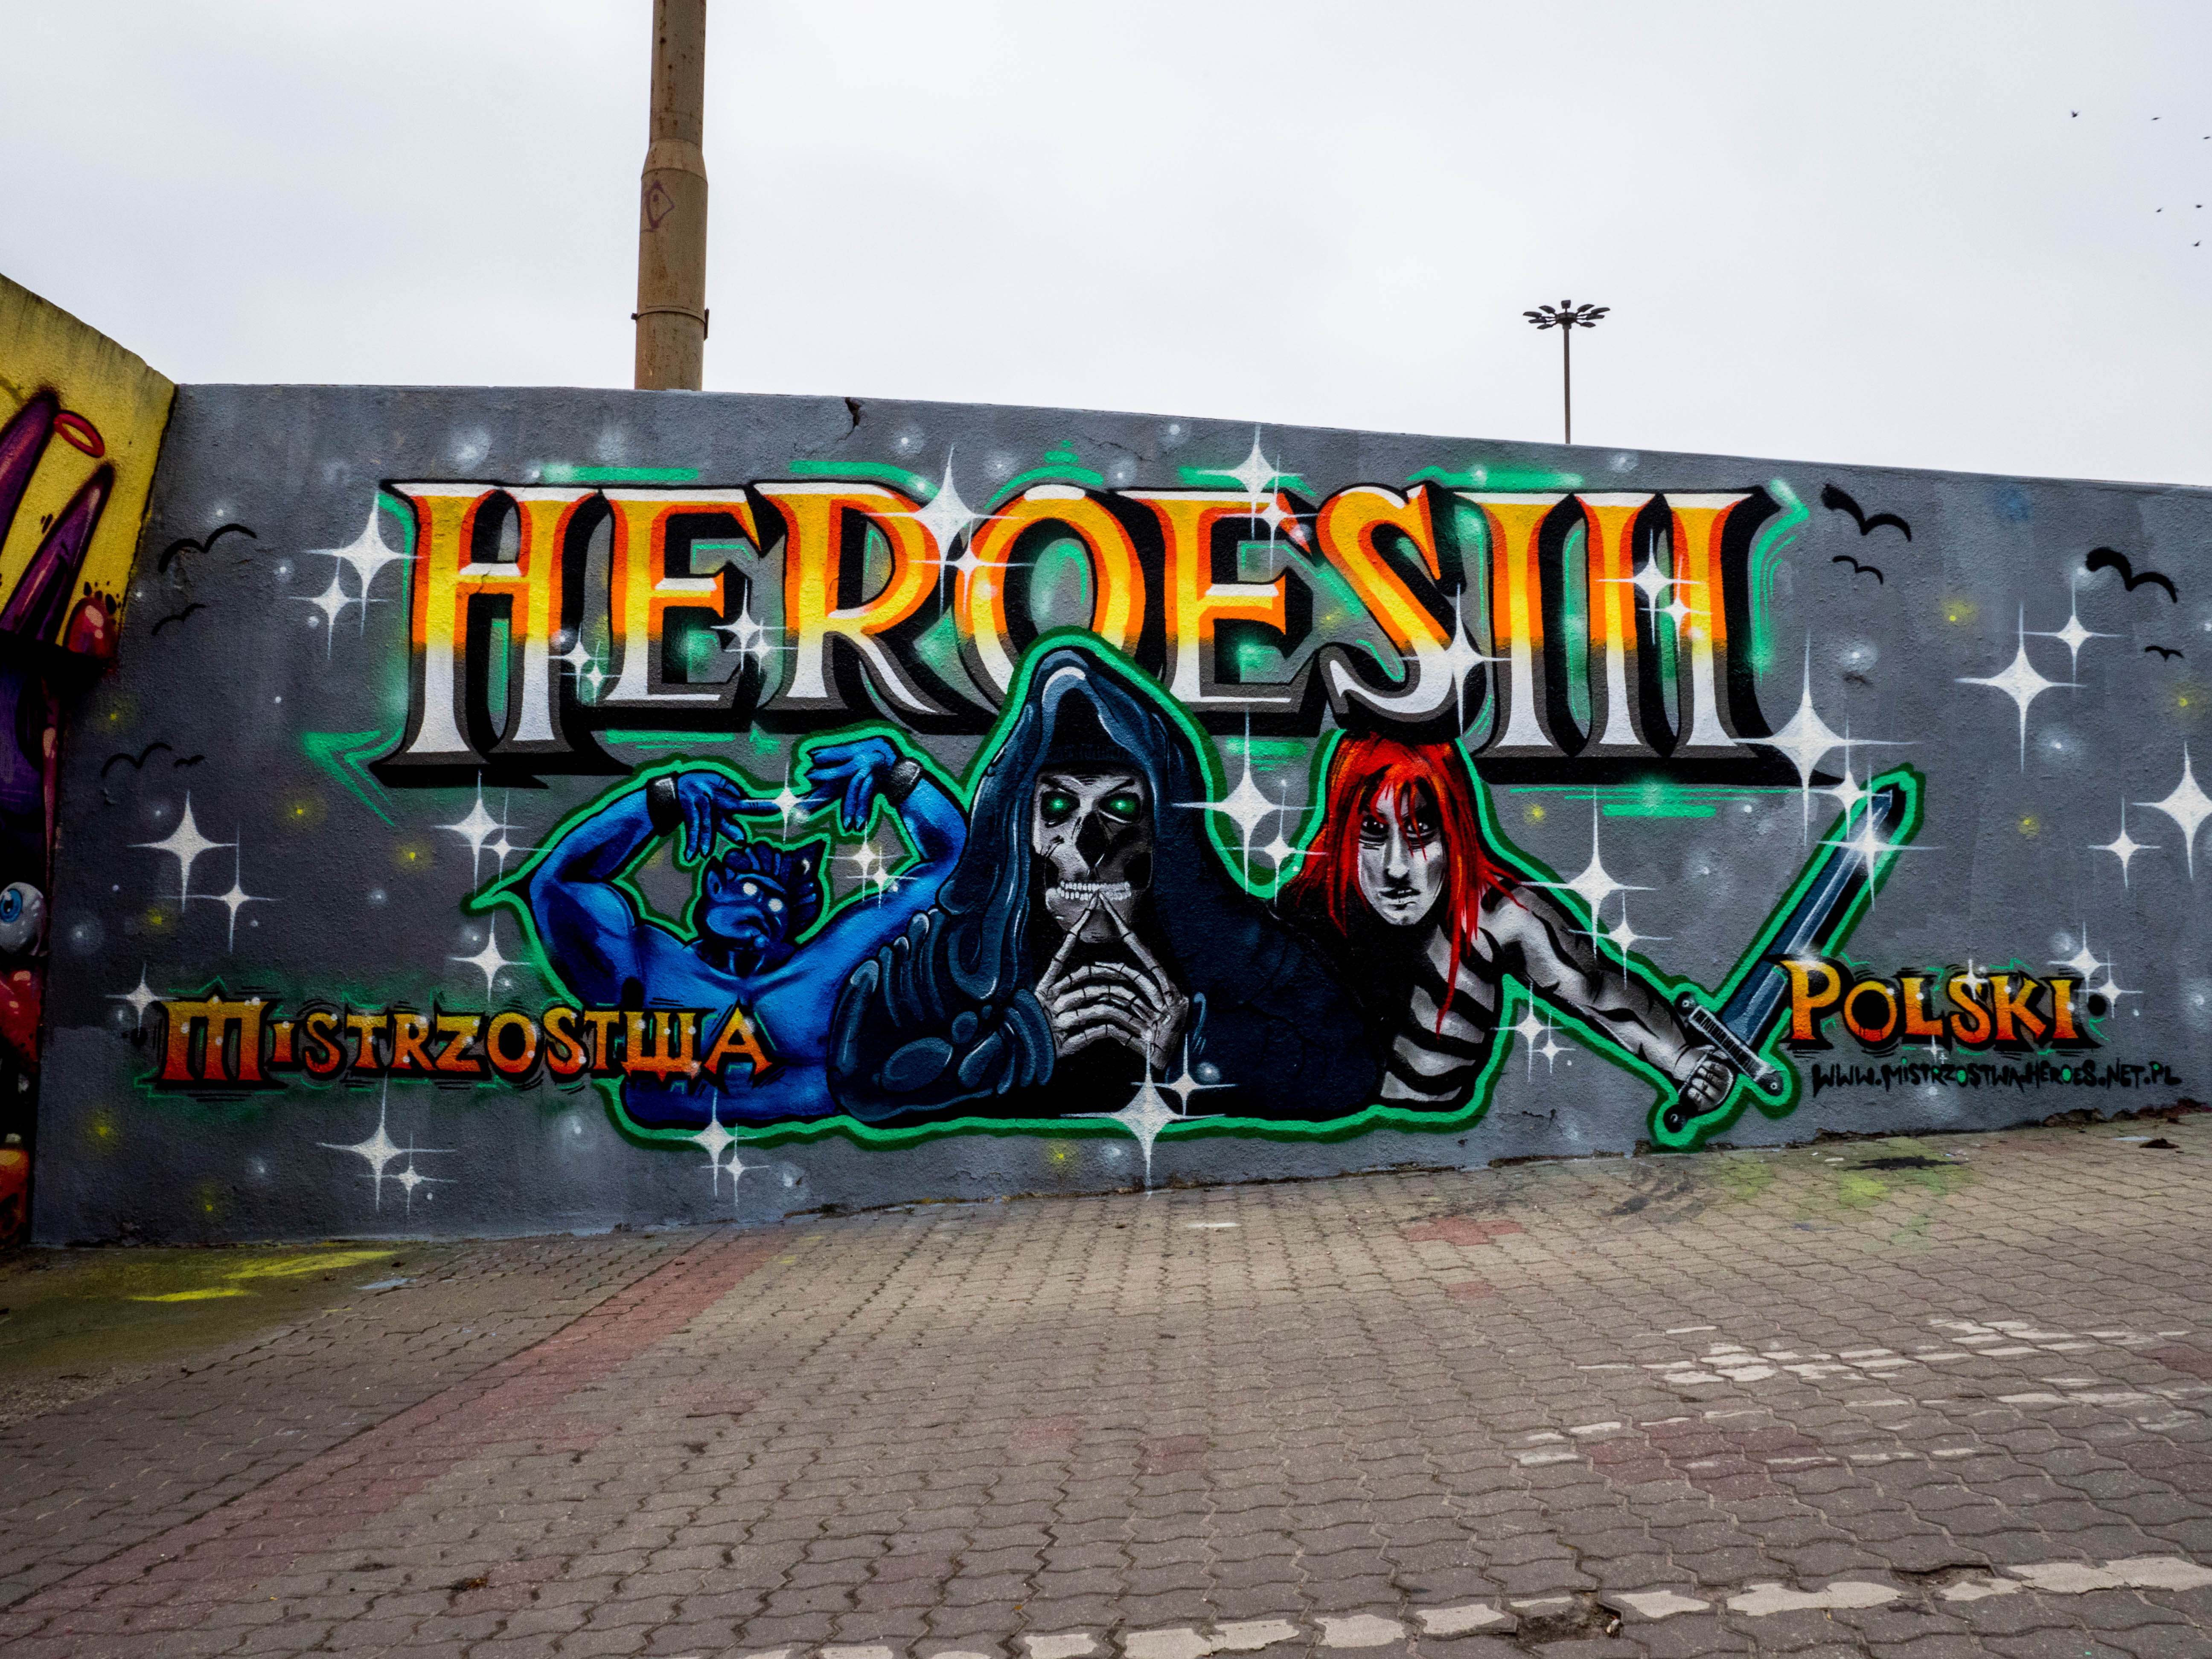 http://heroes.net.pl/uploaded//graffiti/Graffiti_1.jpg